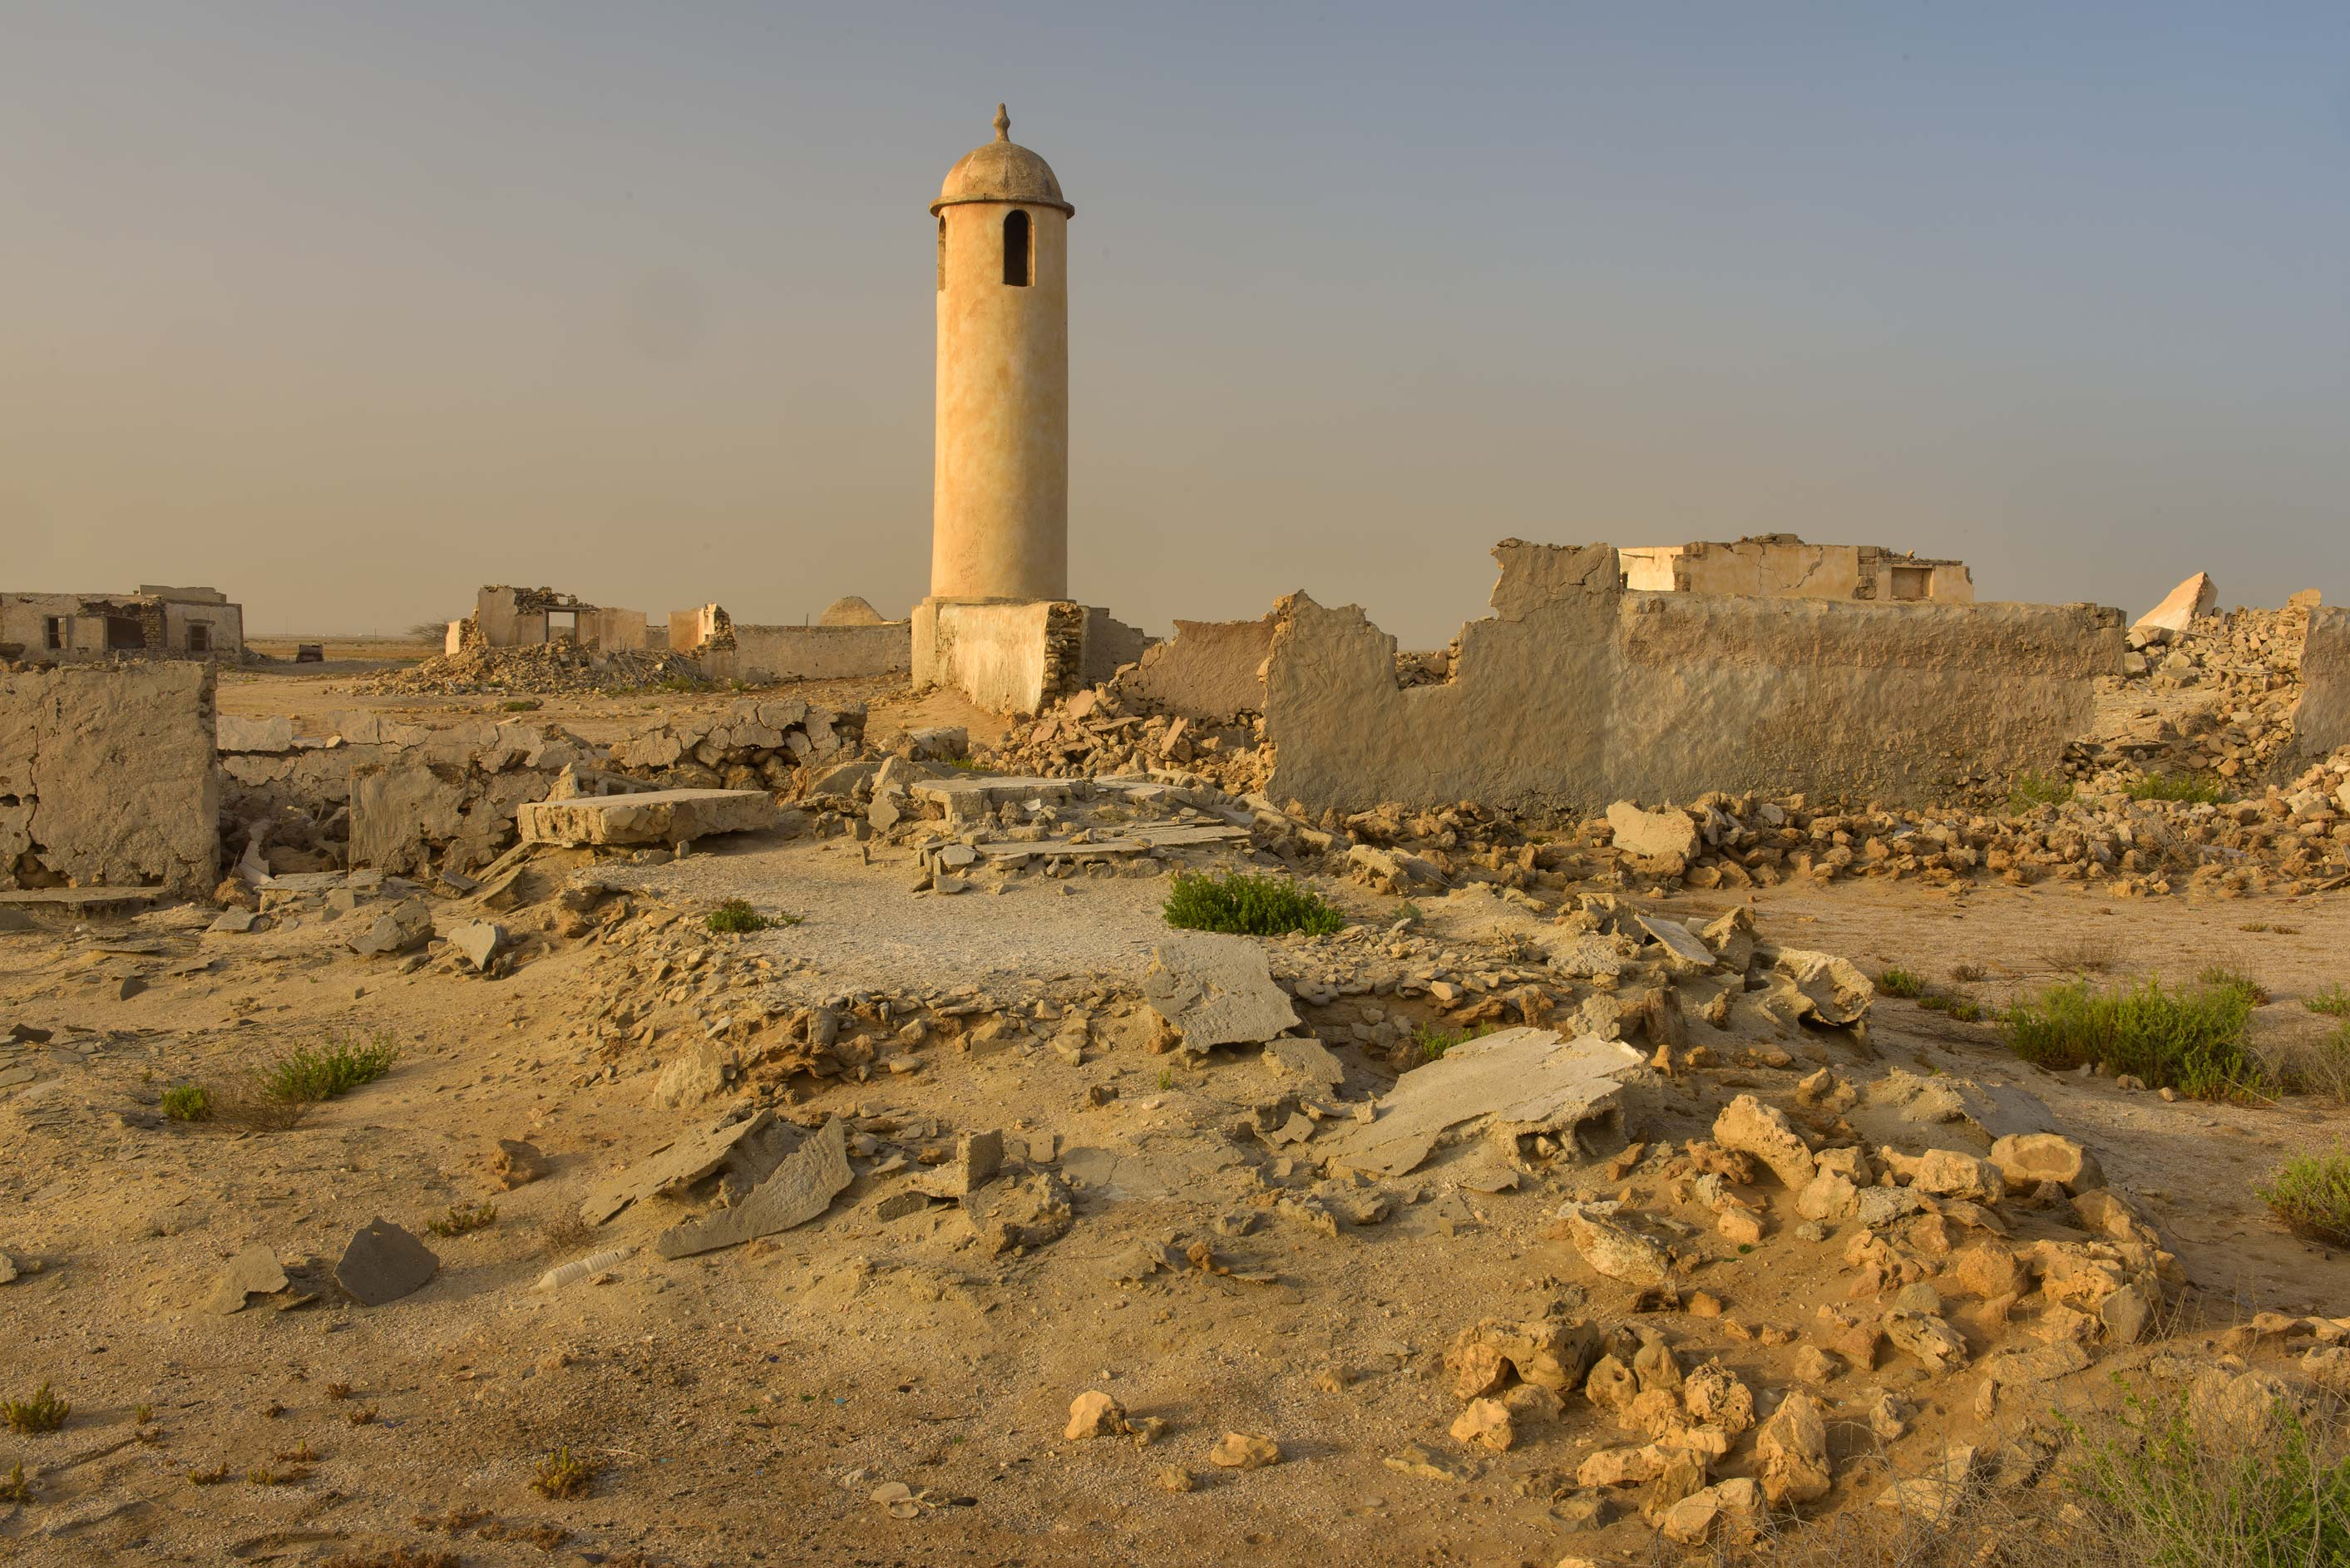 Ruins around mosque minaret in a village of Al Areesh (Arish). Northern Qatar